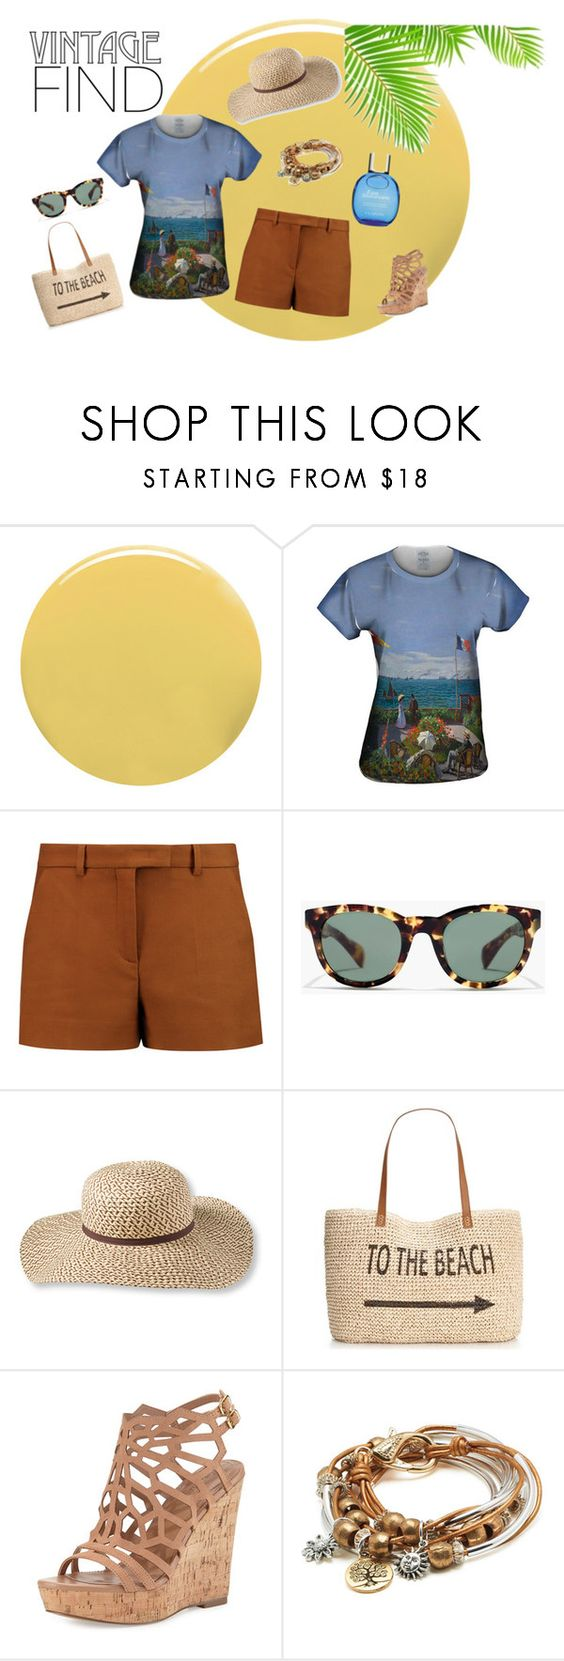 """""""Vintage Summer Find!"""" by yizzam ❤ liked on Polyvore featuring Lauren B. Beauty, Emilio Pucci, J.Crew, L.L.Bean, Style & Co., Charles by Charles David, Lizzy James, Clarins, vintage and ootd"""